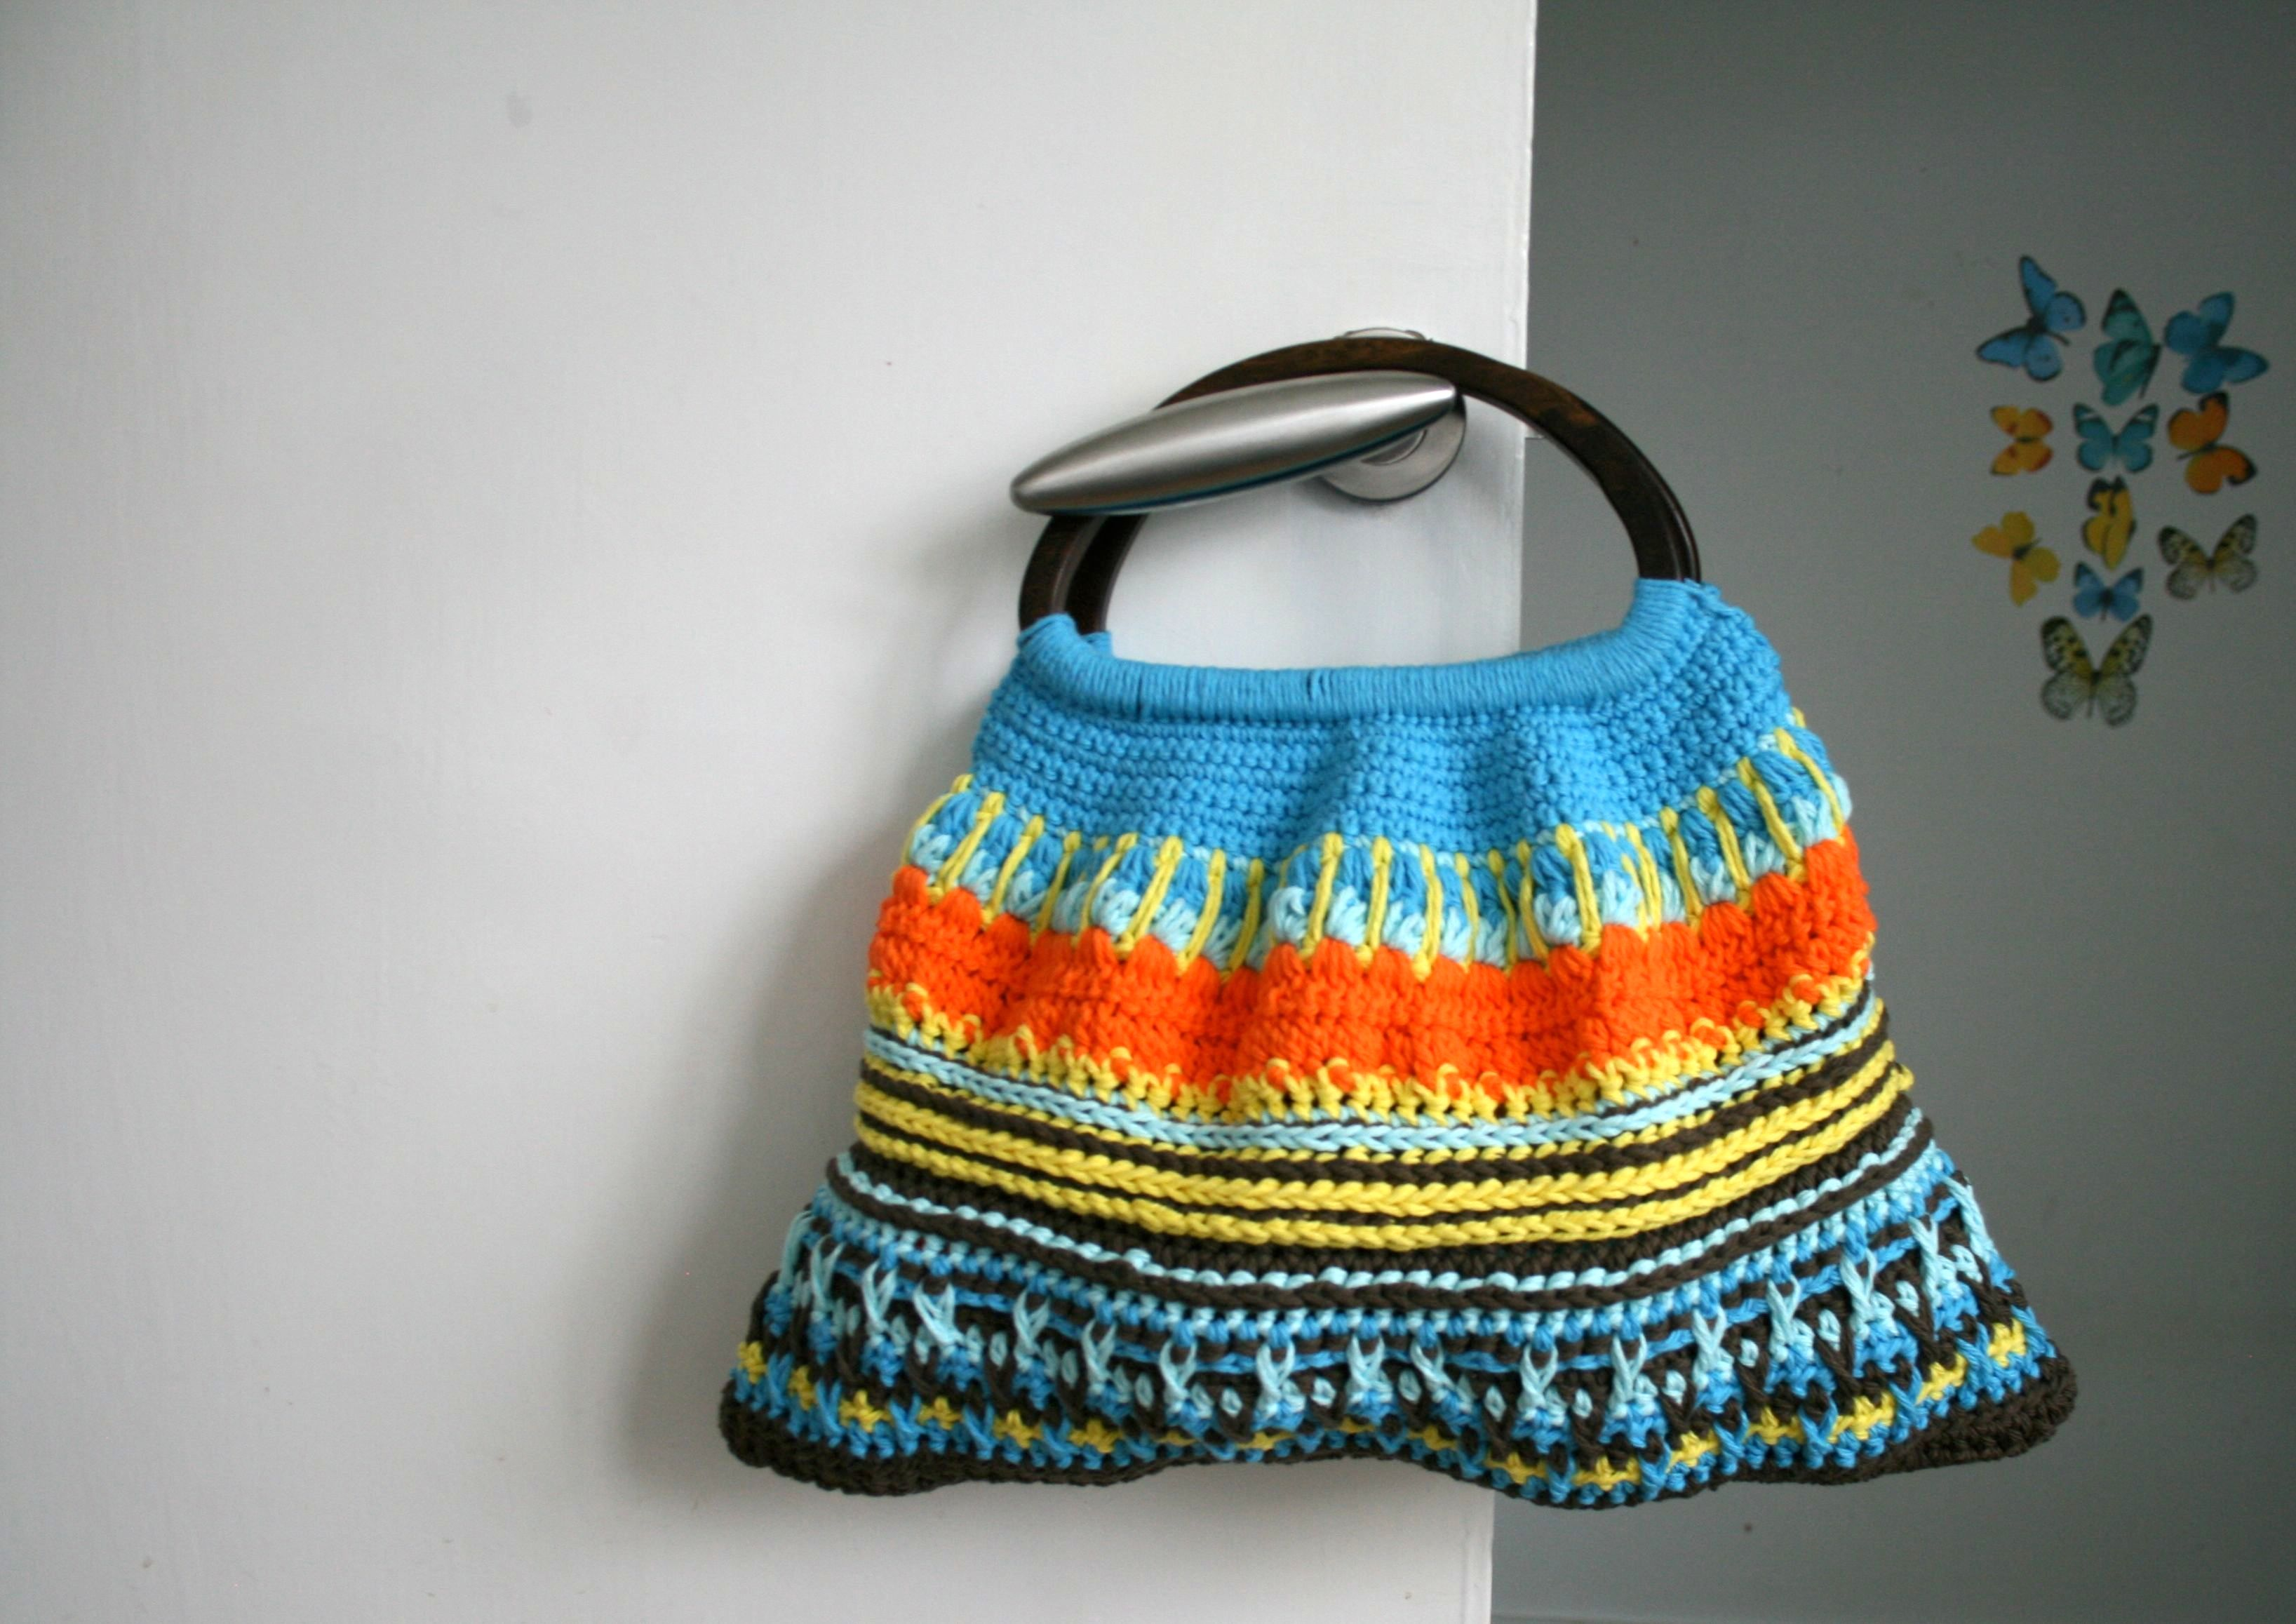 Free Crochet Purse Patterns With Wooden Handles : Wooden handle retro crochet purse pattern only USD3! - Luz ...